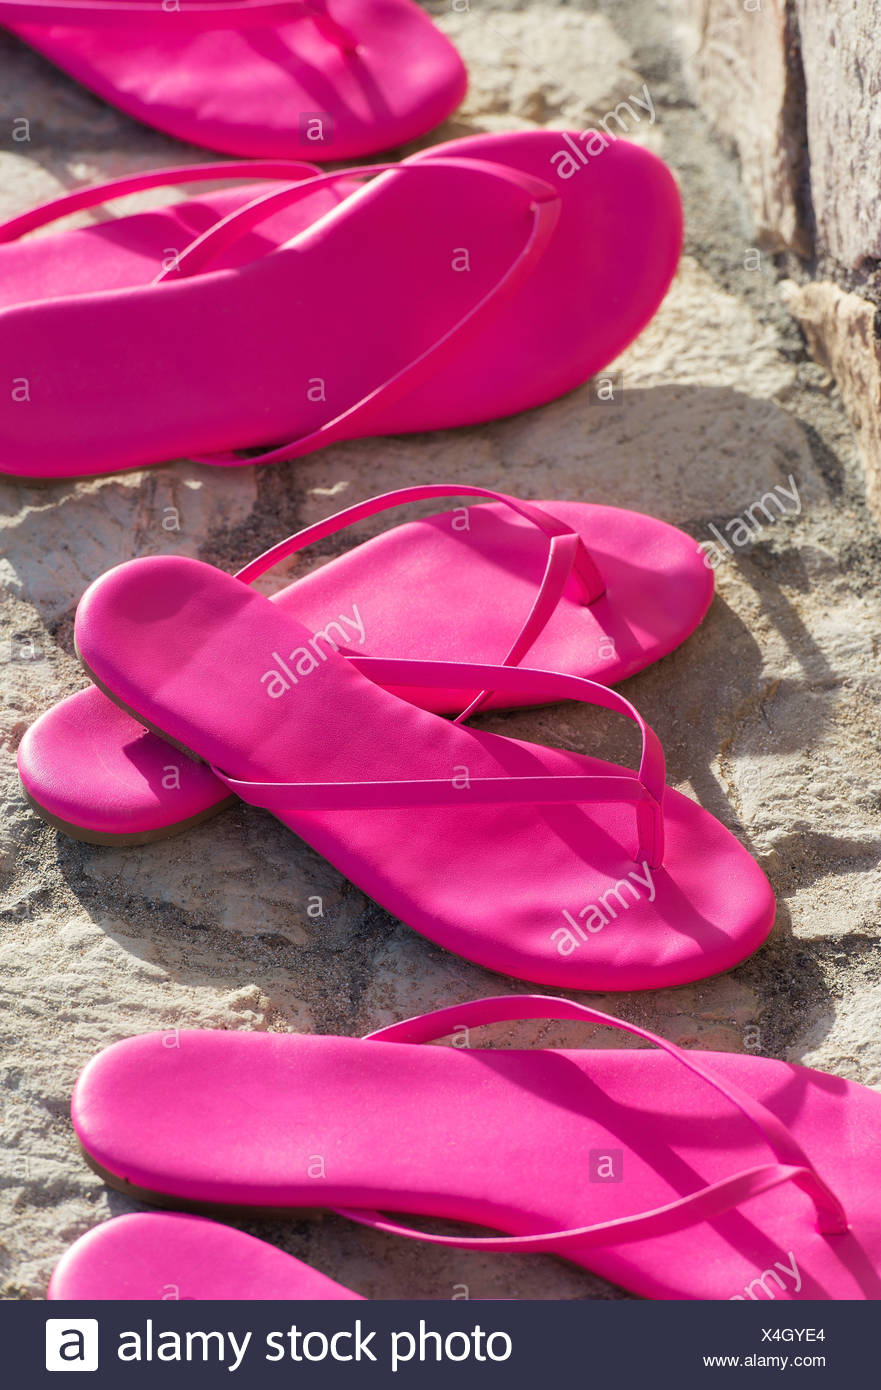 Matching pairs of hot pink sandals. - Stock Image